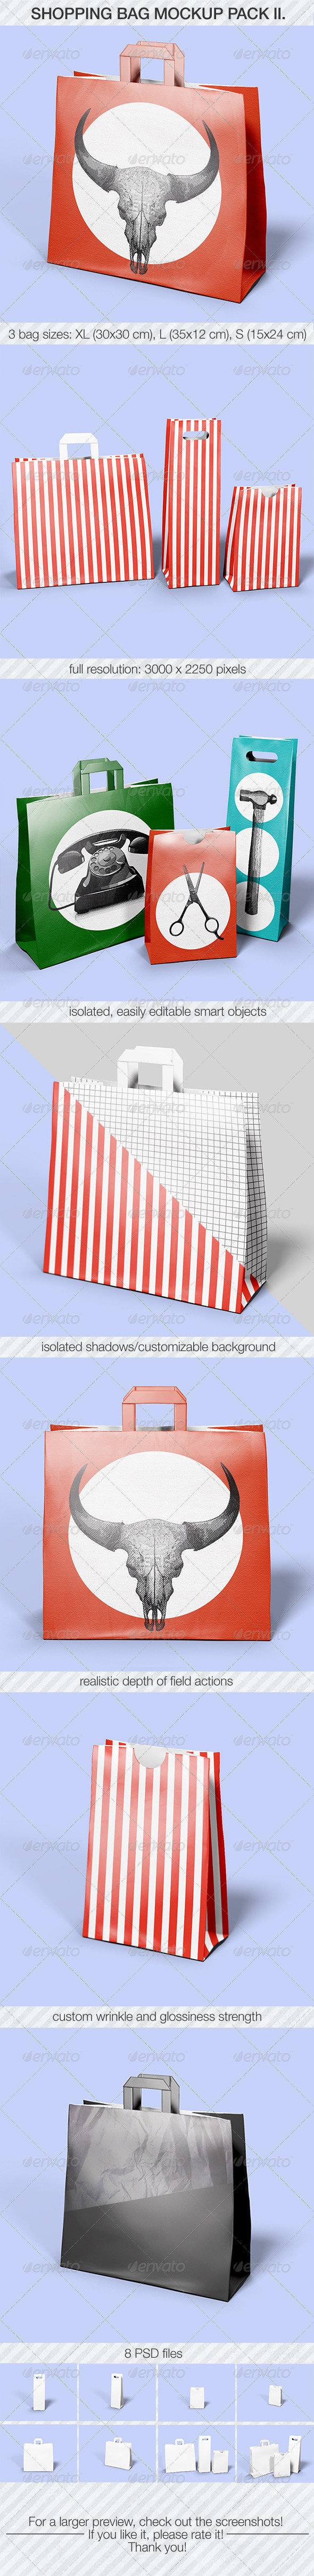 Shopping Bag Mockup Pack II - Miscellaneous Product Mock-Ups